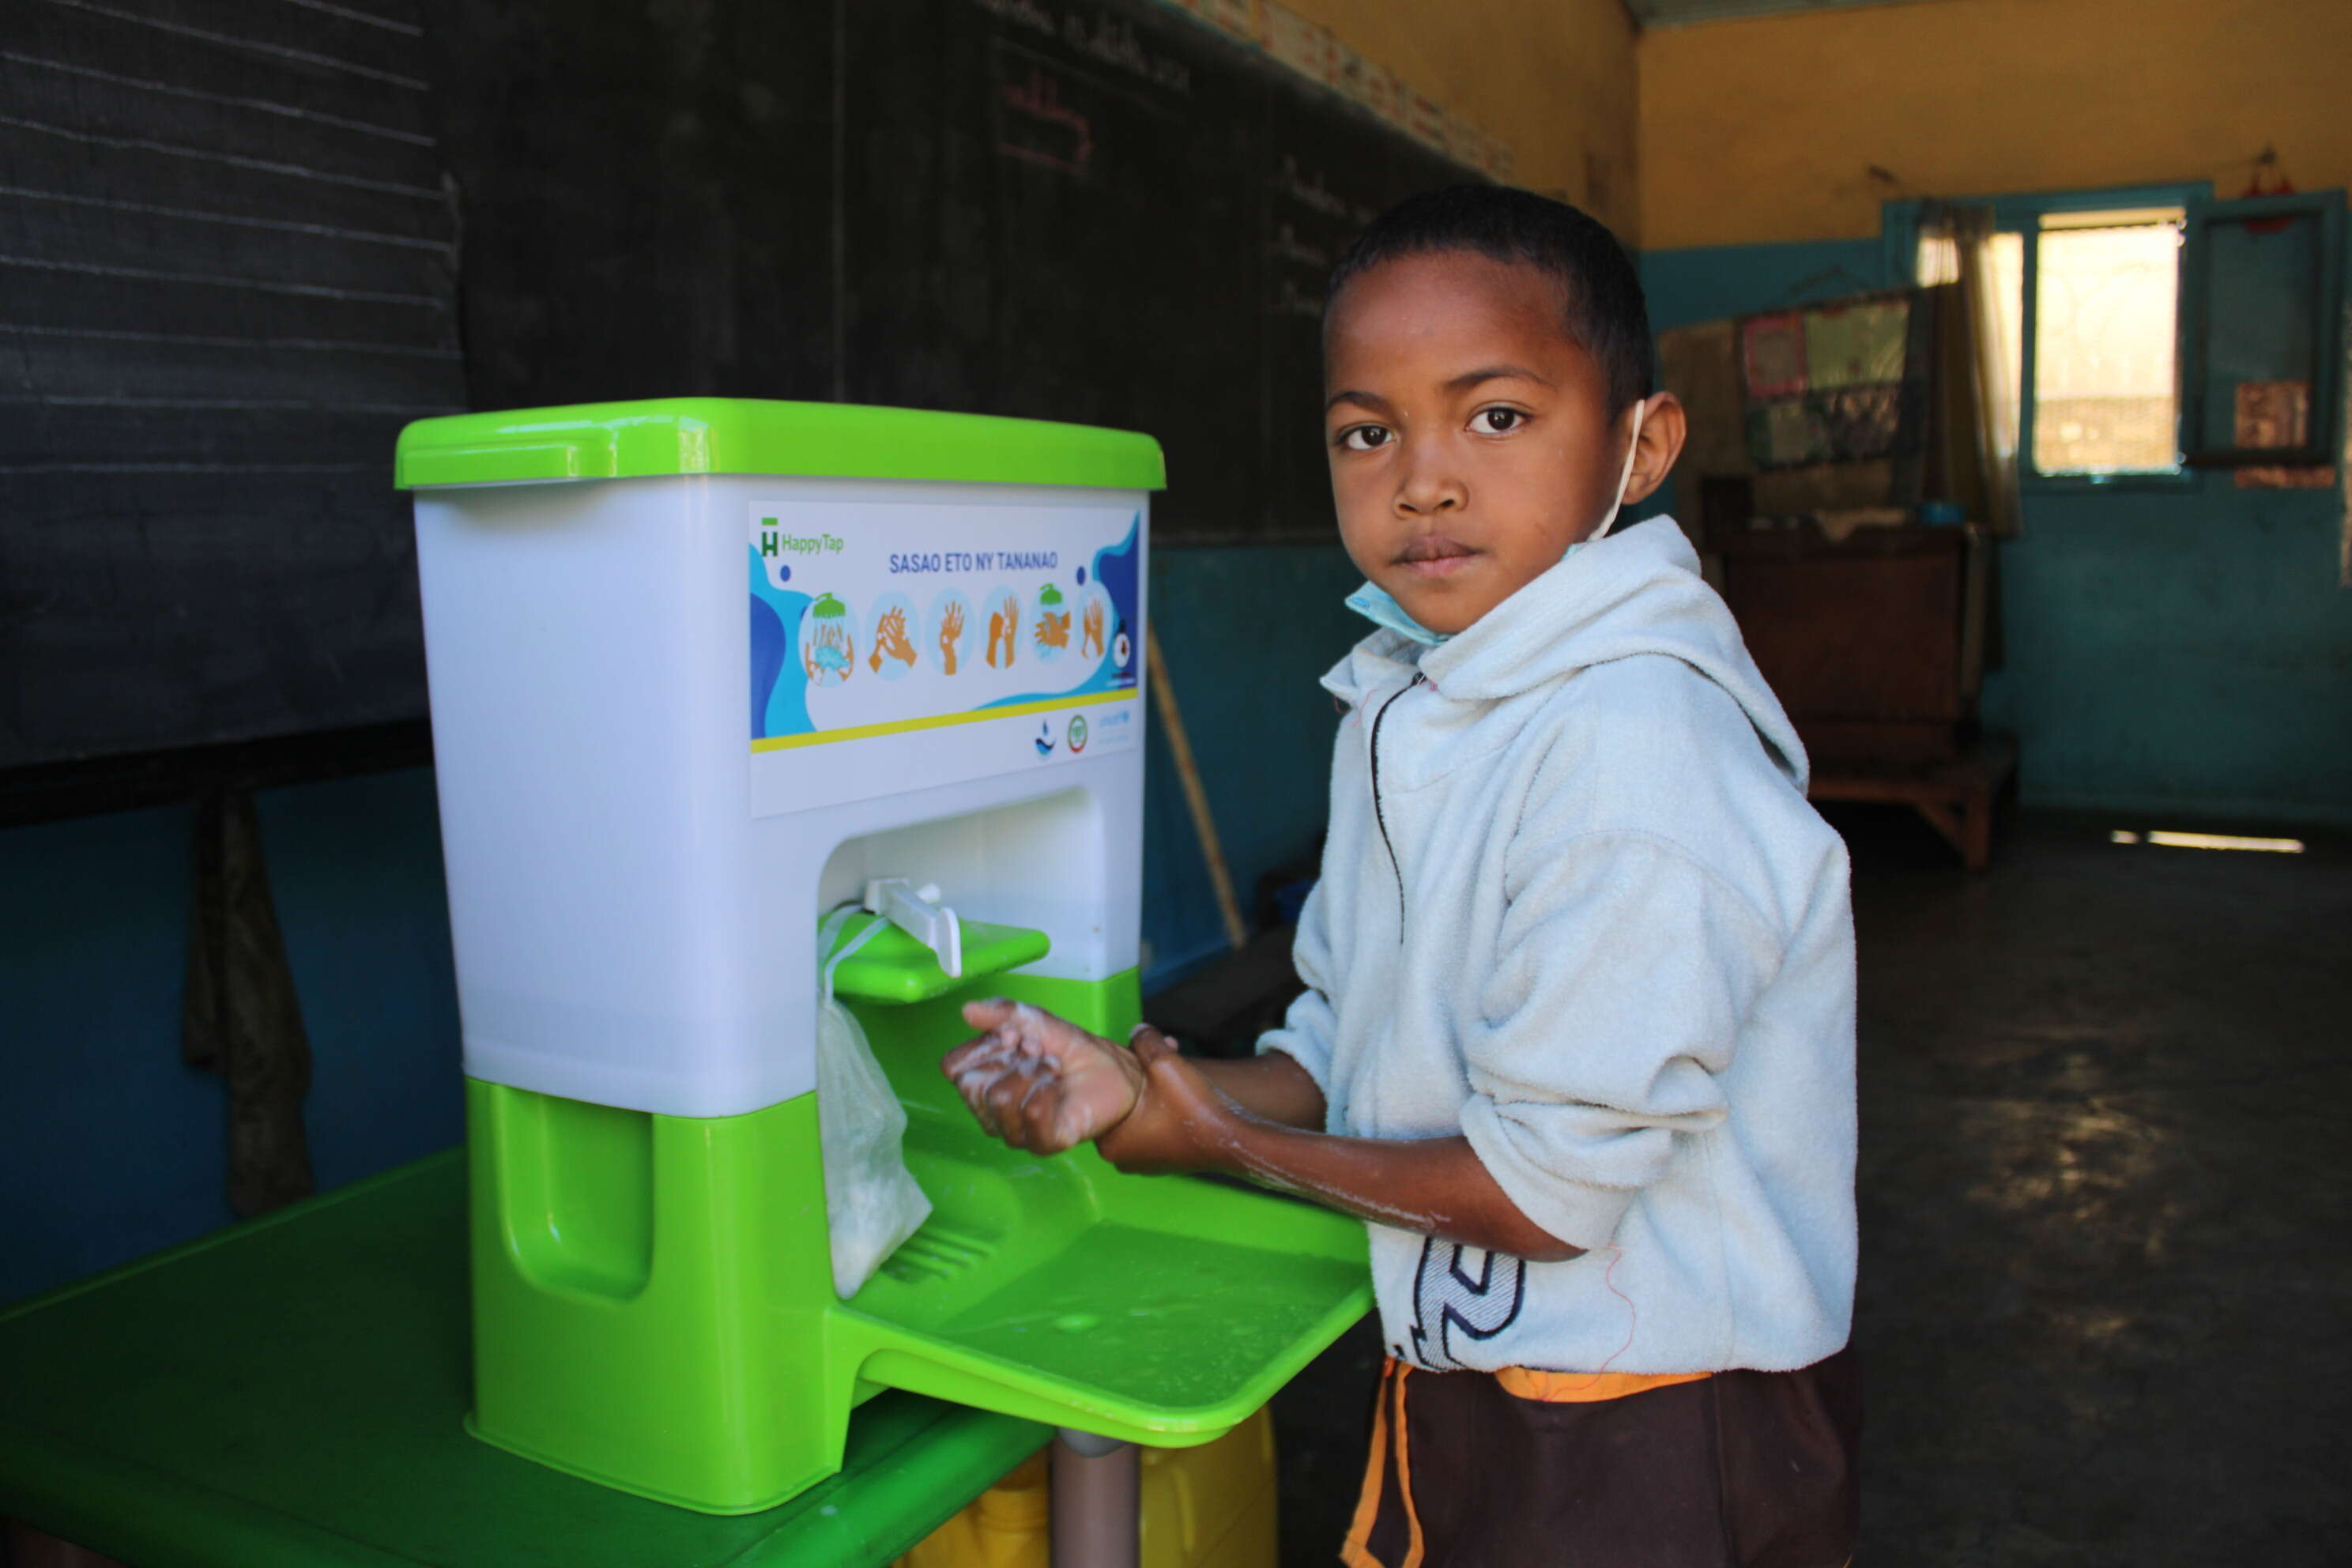 Global Handwashing Day 2021 - How are we putting handwashing within reach for students and teachers? A spotlight on Madagascar.